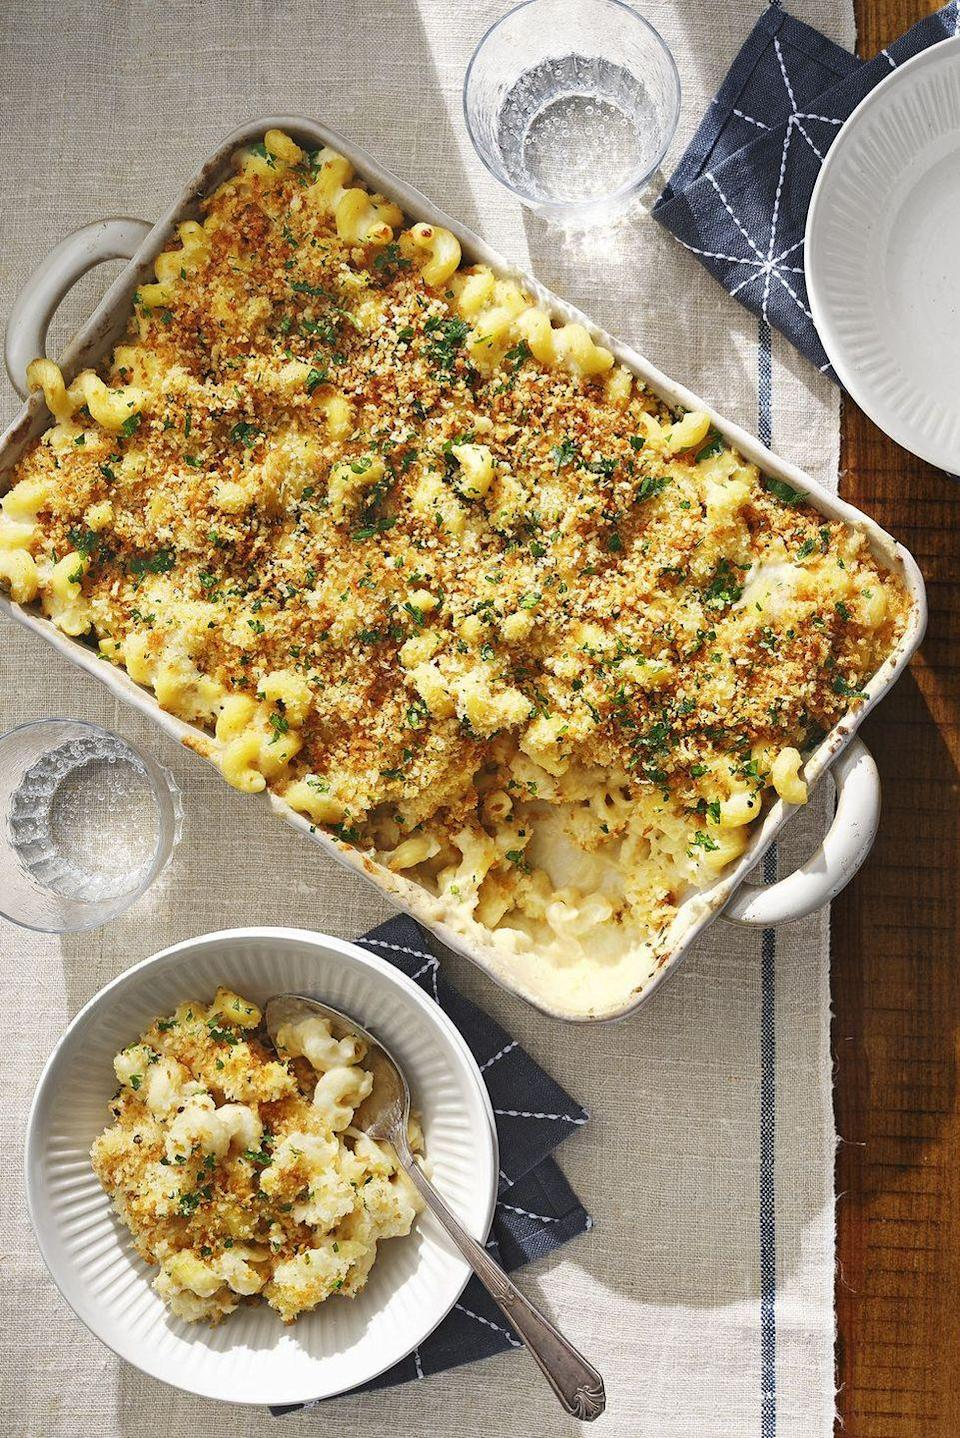 "Mac and cheese is already creamy comfort food, but this cauliflower-boosted variety not only gets a boost of fiber and vitamins, the veggie purée actually makes it <em>creamier</em>. You're welcome. <a href=""https://www.countryliving.com/food-drinks/a30418292/cauliflower-mac-and-cheese-recipe/"" rel=""nofollow noopener"" target=""_blank"" data-ylk=""slk:Get the recipe"" class=""link rapid-noclick-resp""><strong>Get the recipe</strong></a><strong>.</strong> <a href=""https://www.amazon.com/REGALO-HW1224-Rectangular-Stoneware-13-5x8-25x2-5/dp/B07LBT6DHM/?tag=syn-yahoo-20&ascsubtag=%5Bartid%7C10050.g.3241%5Bsrc%7Cyahoo-us"" class=""link rapid-noclick-resp"" rel=""nofollow noopener"" target=""_blank"" data-ylk=""slk:SHOP BAKING DISHES""><strong>SHOP BAKING DISHES</strong></a><strong><br></strong>"